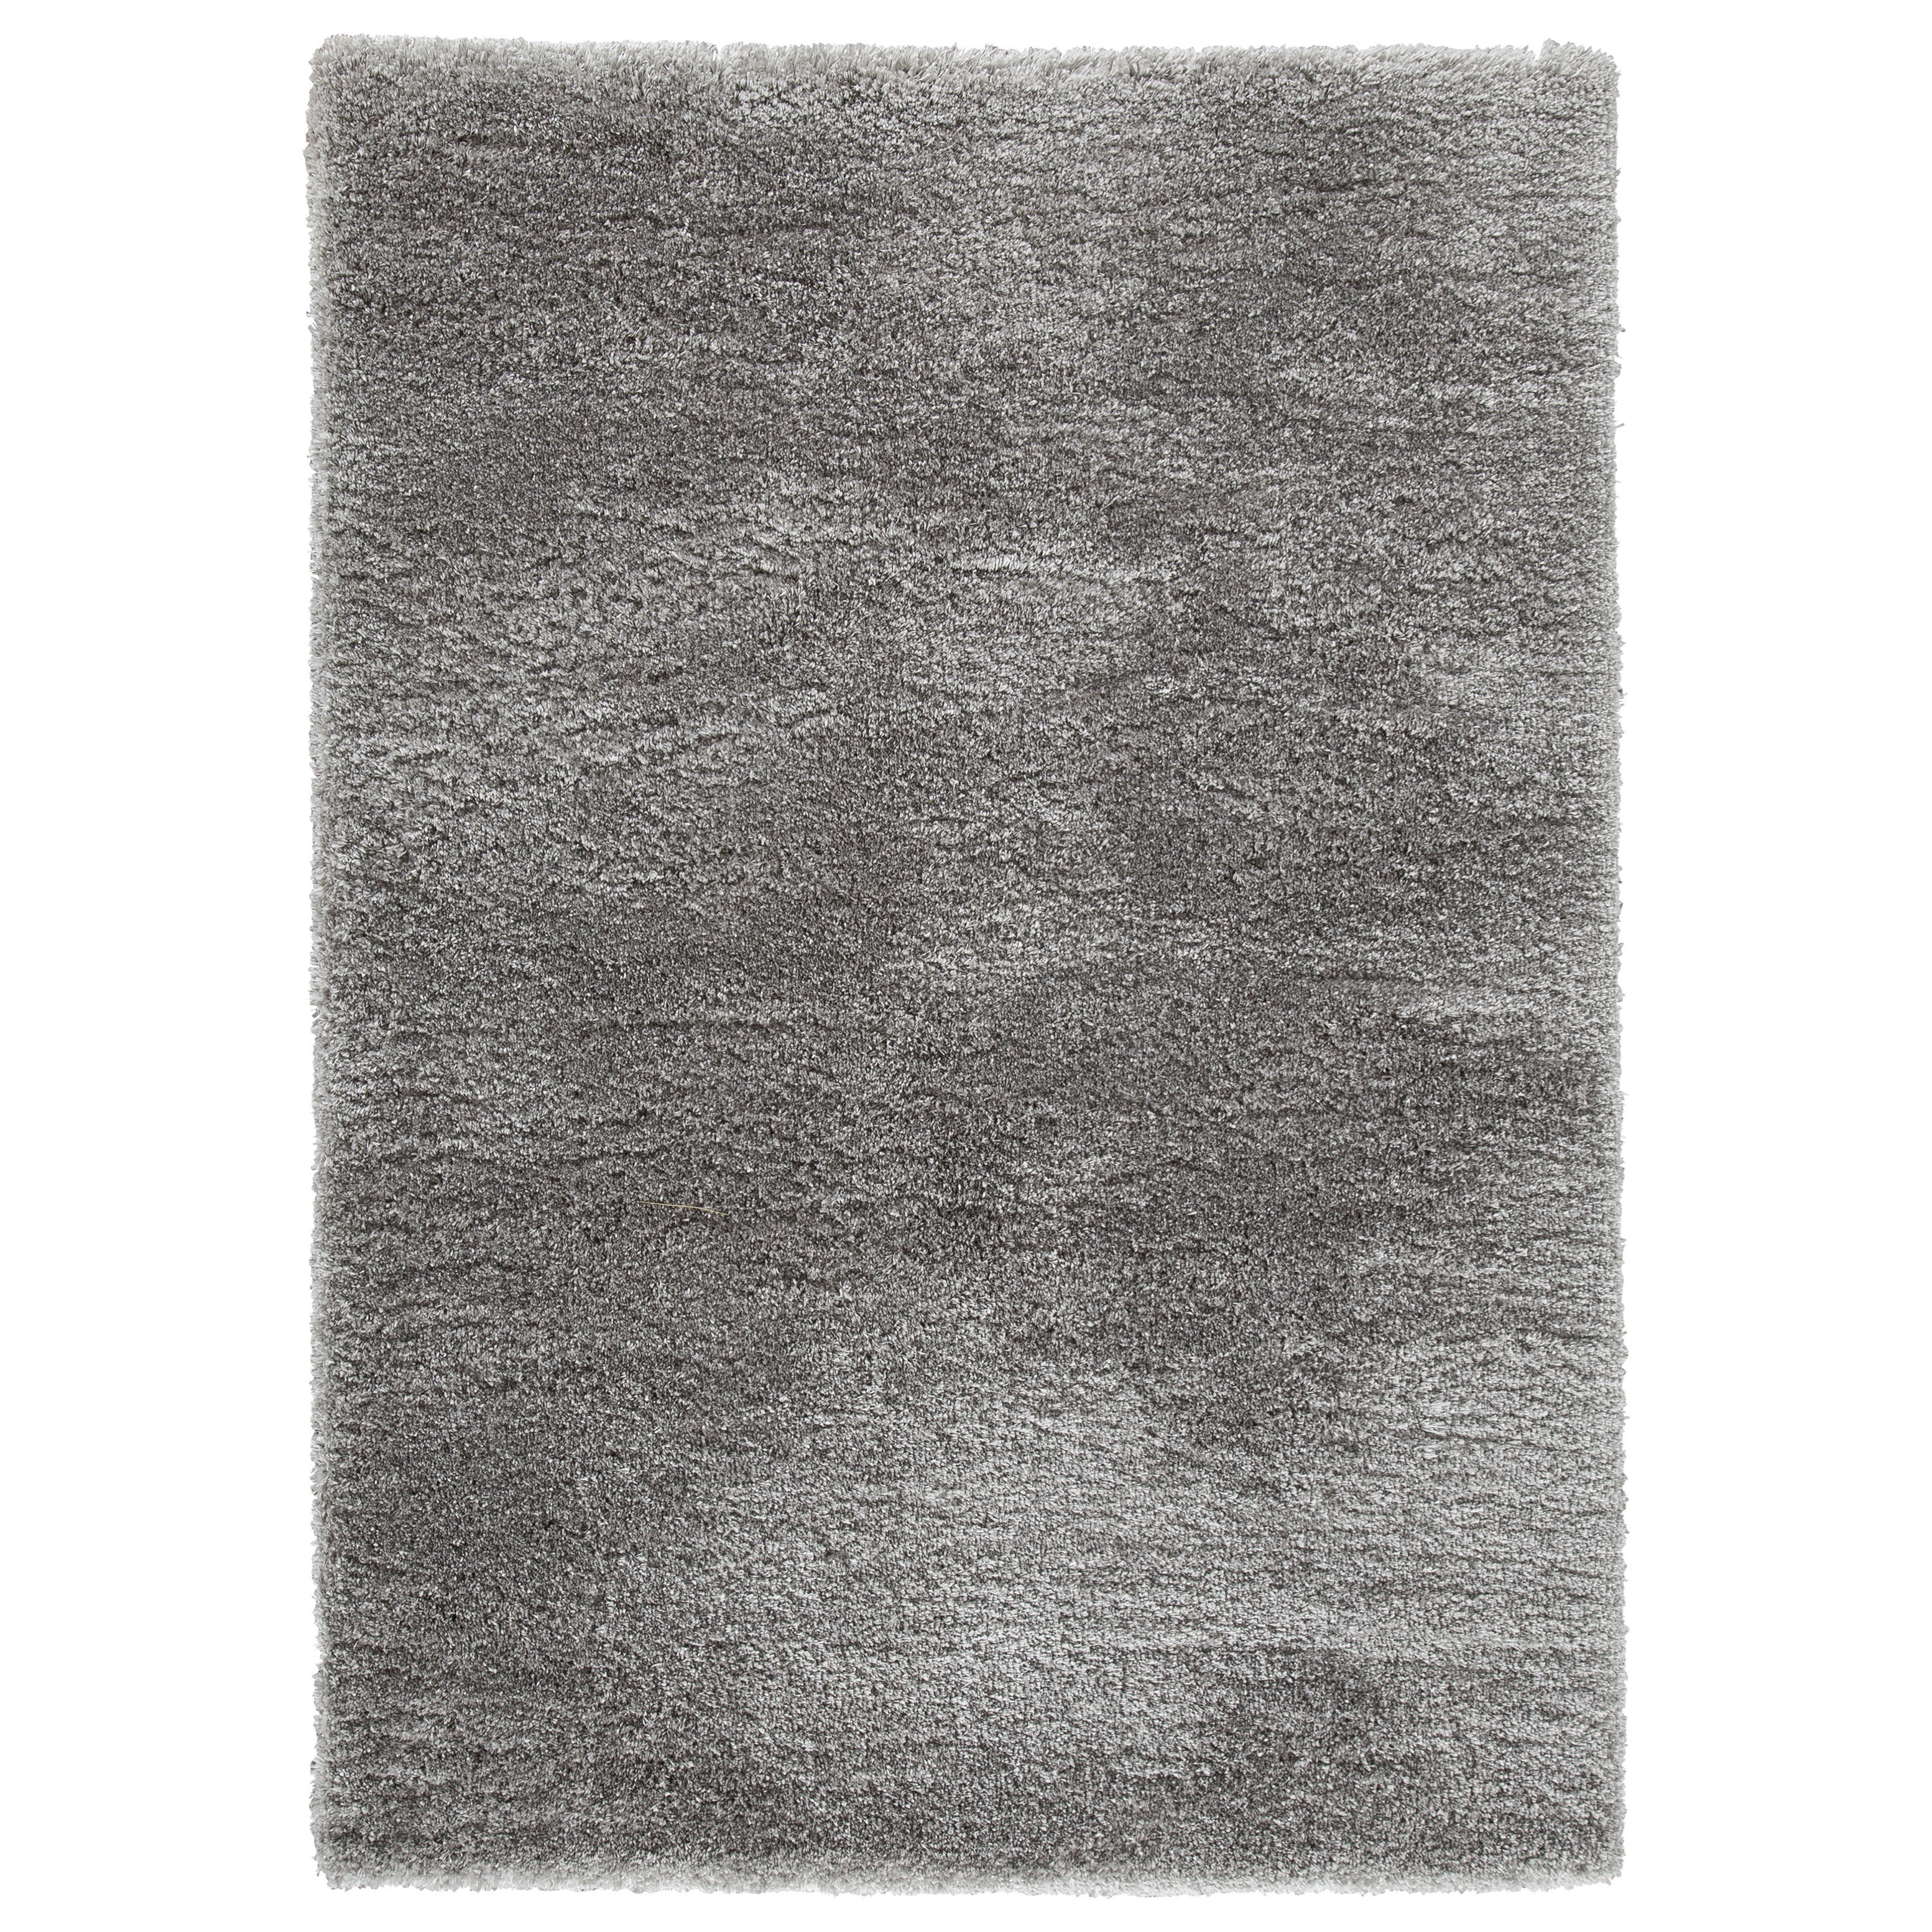 Casual Area Rugs Rendale Light Gray Large Rug by Signature at Walker's Furniture